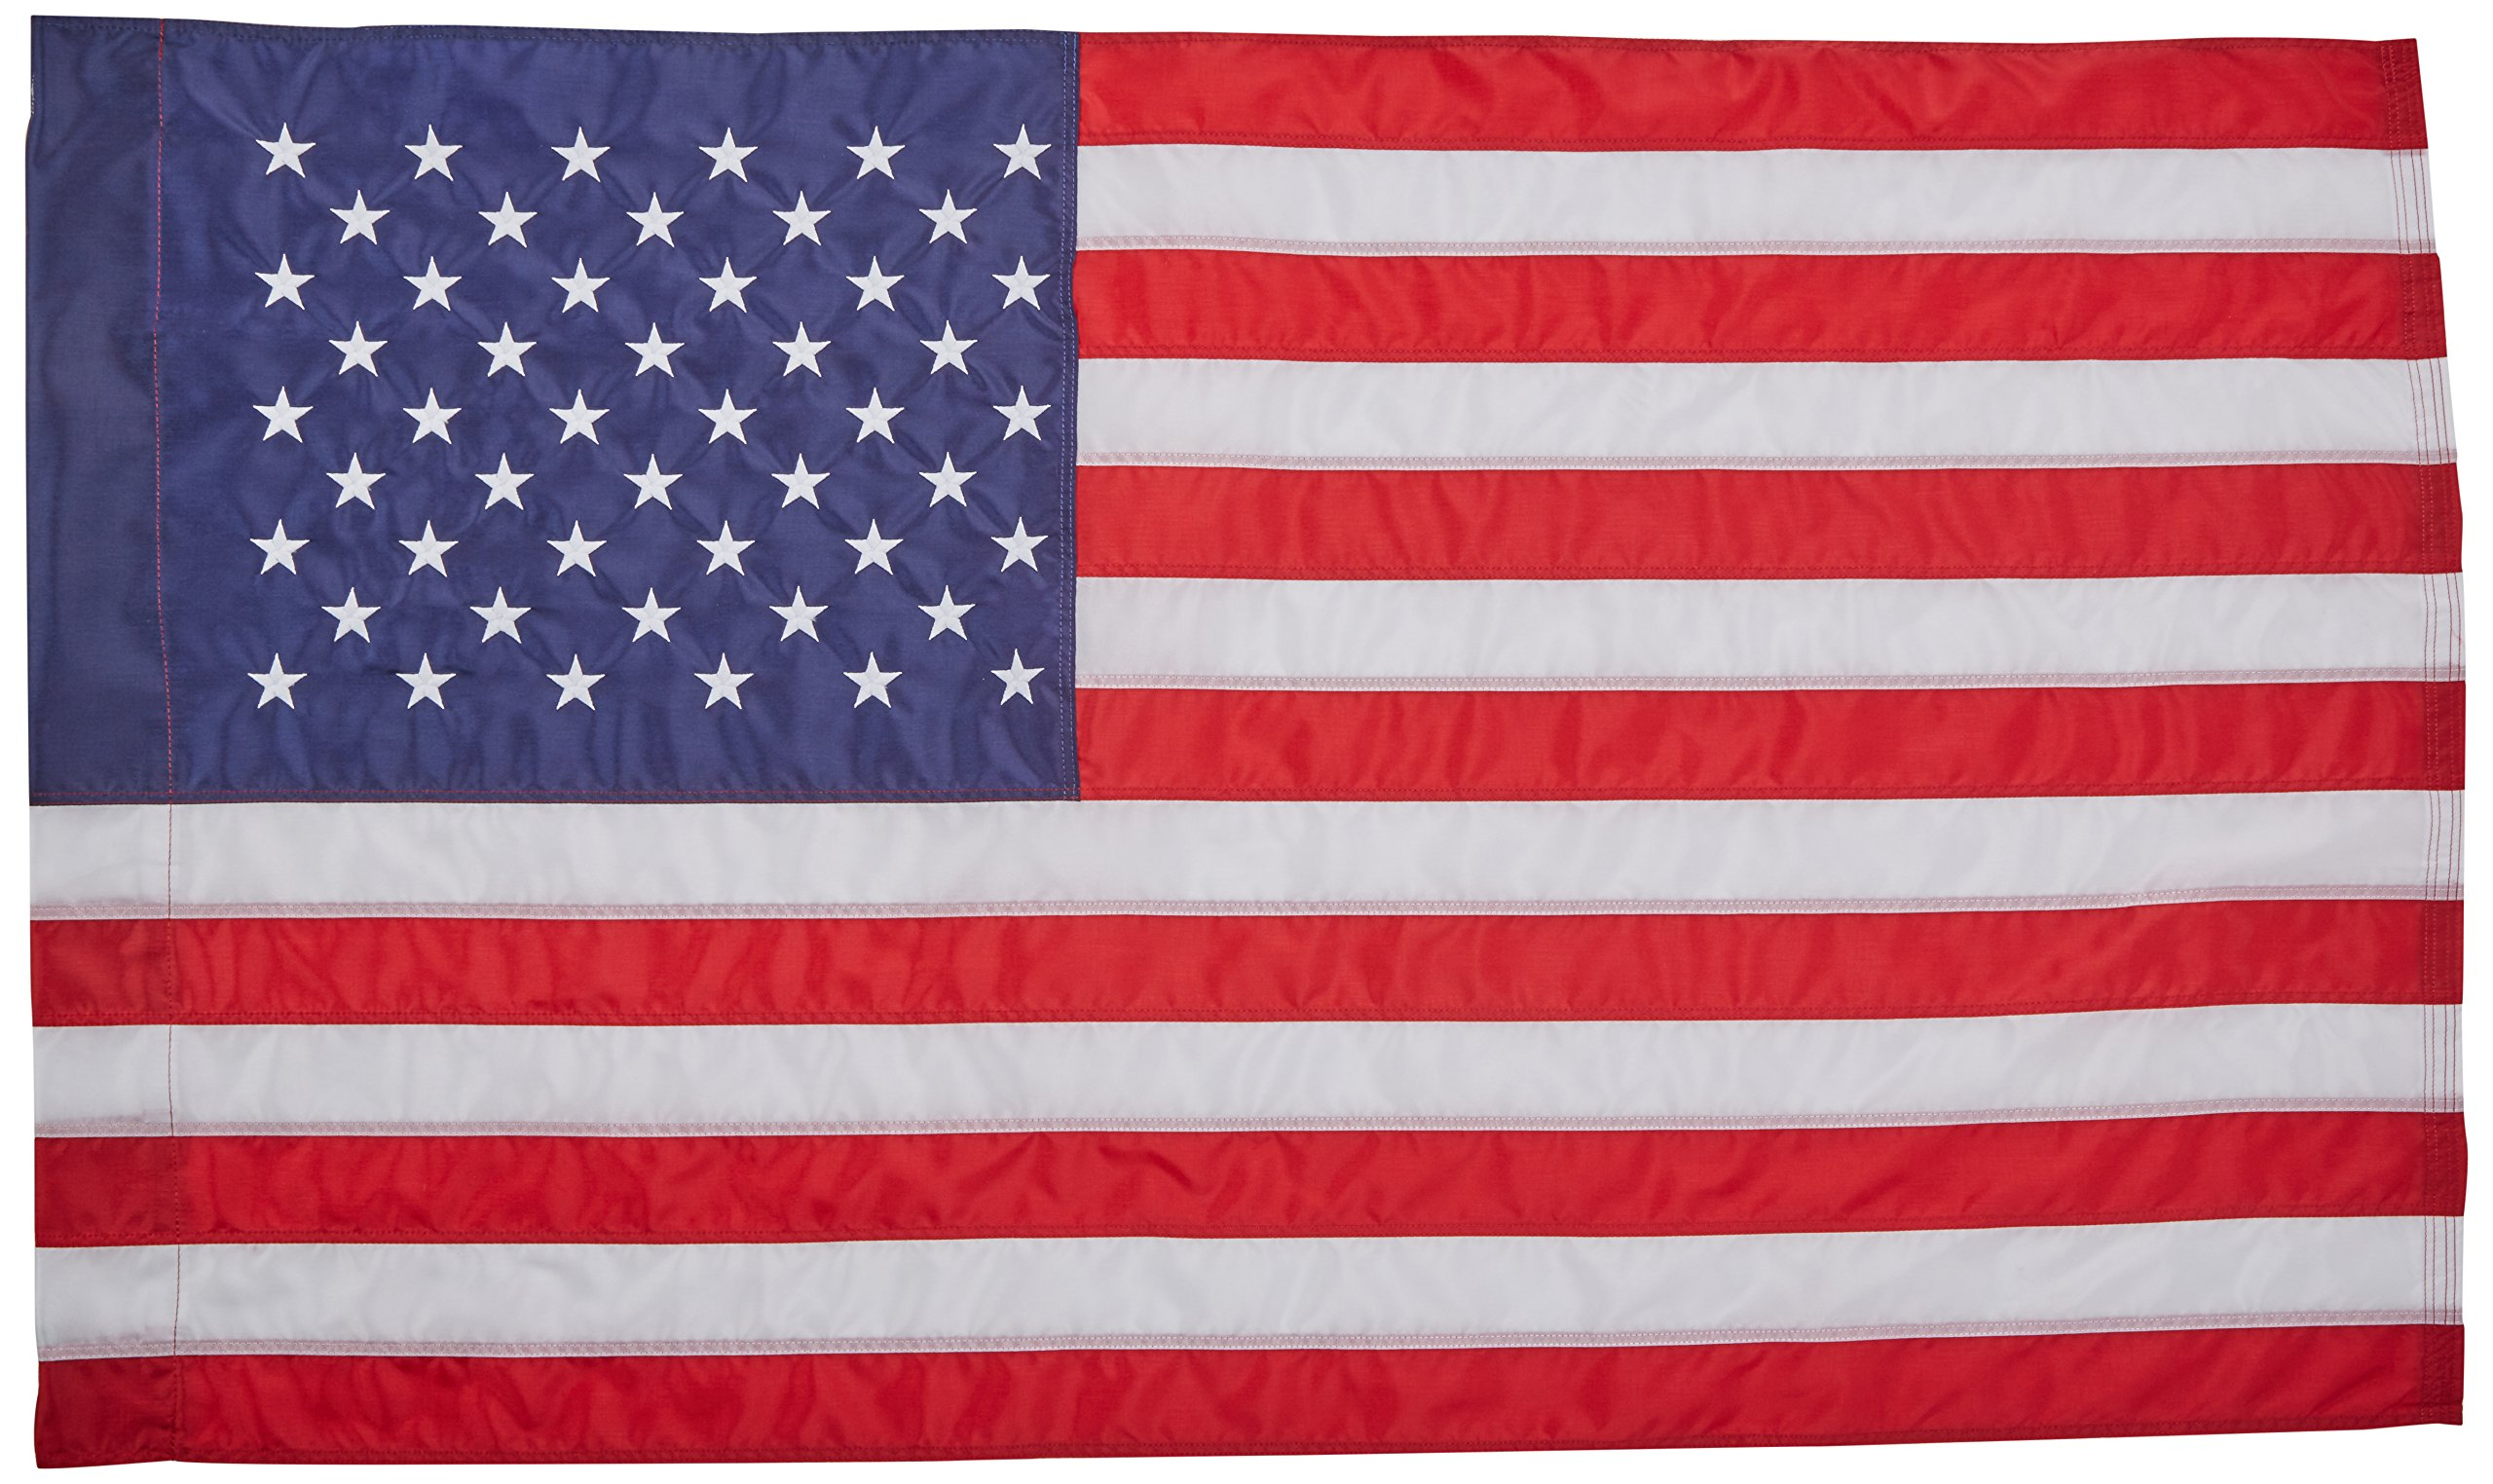 Annin Flagmakers Model 21850 American Flag 2 ½ x 4 ft. Nylon SolarGuard Nyl-Glo, 100% Made in USA with Sewn Stripes, Embroidered Stars and Banner-Style Pole Sleeve.